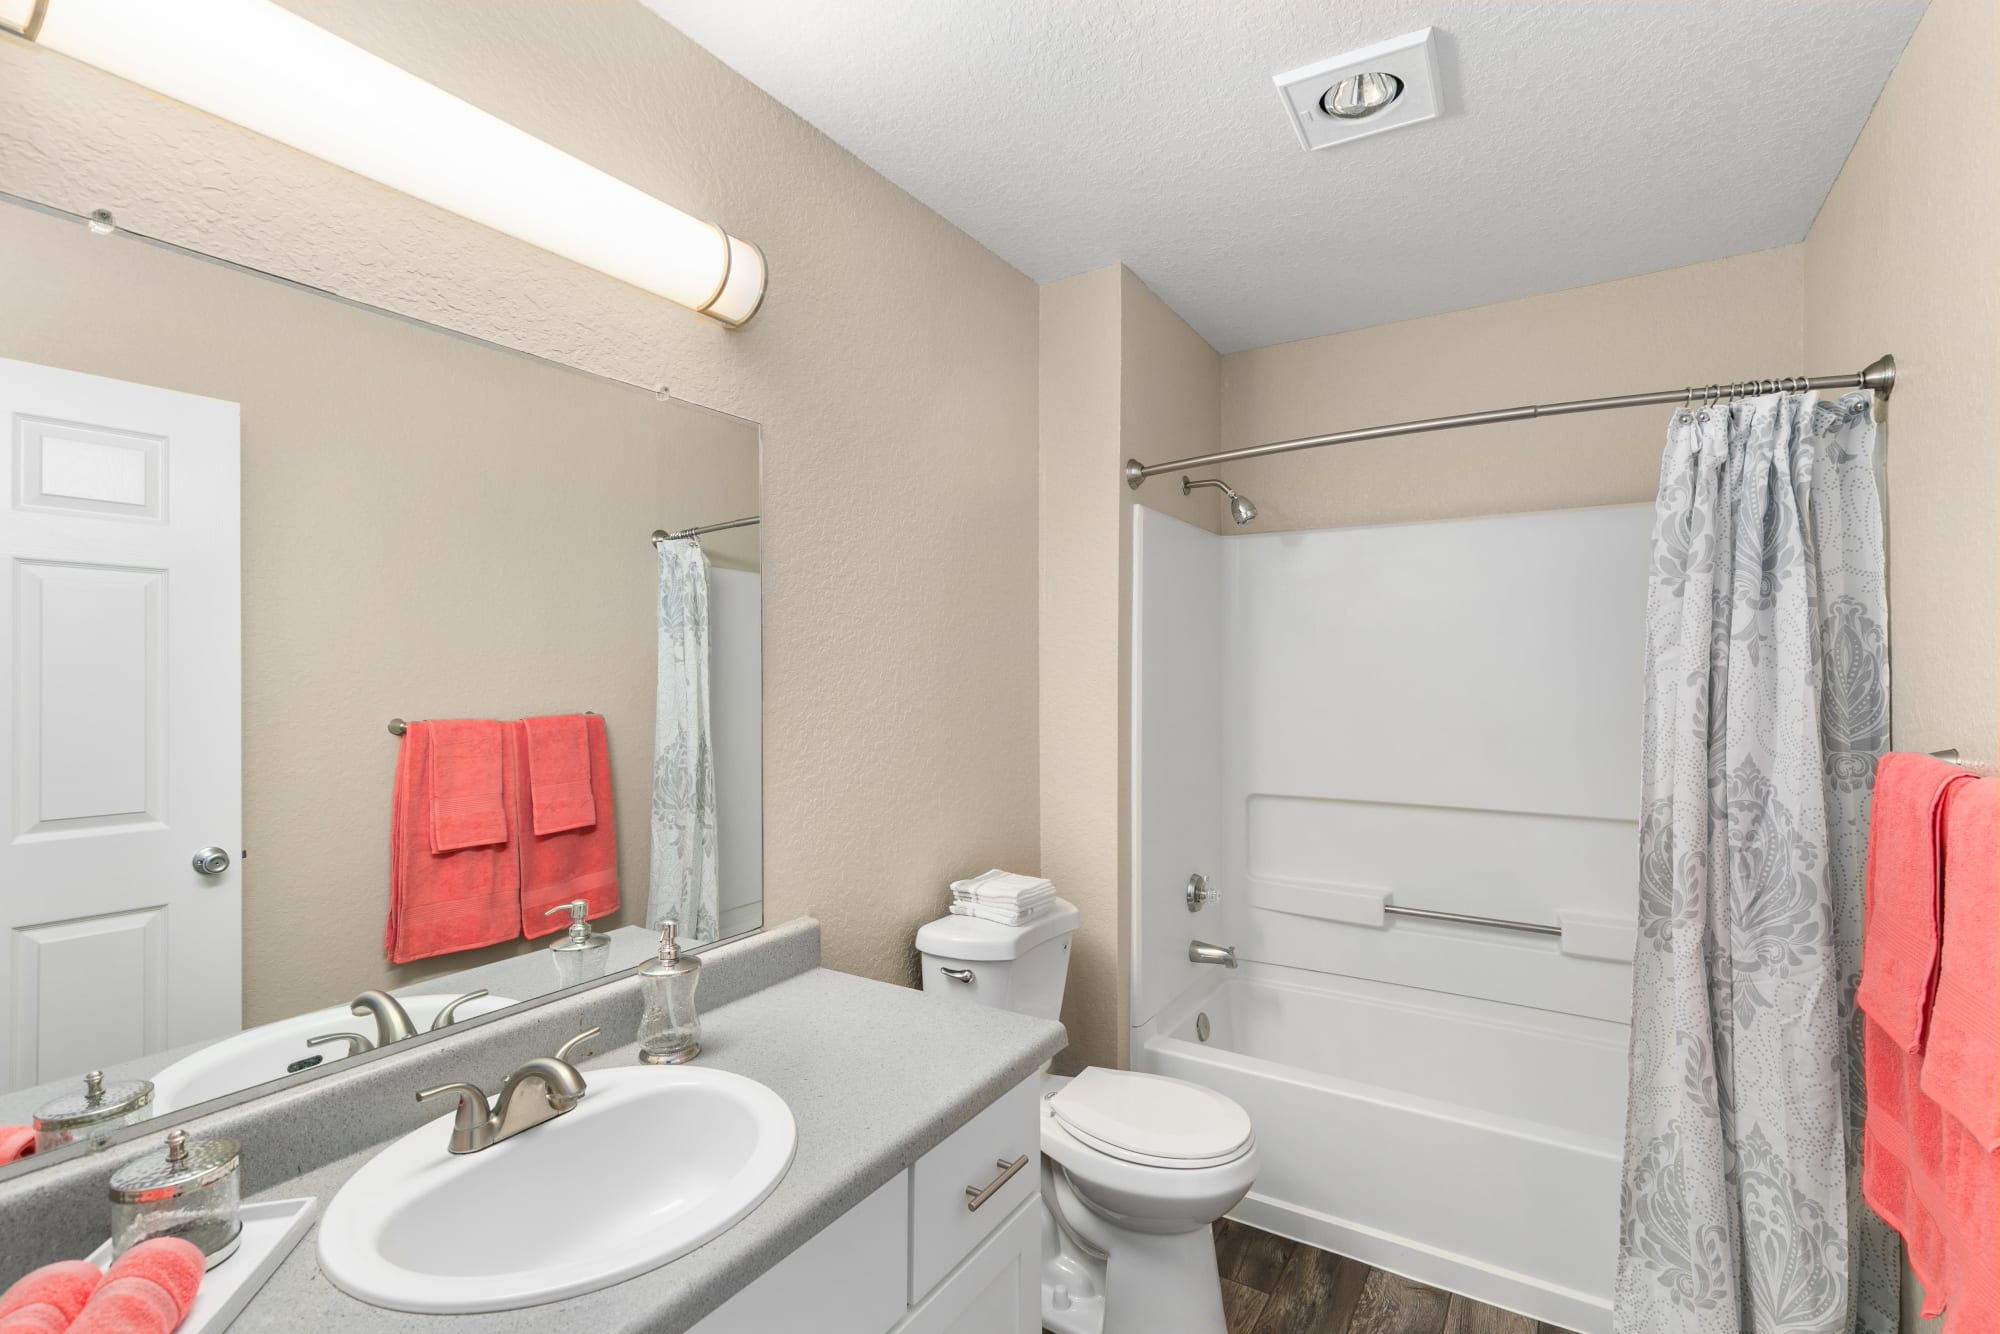 Updated bathroom with a large mirror and tub at Carriage Park Apartments in Vancouver, Washington